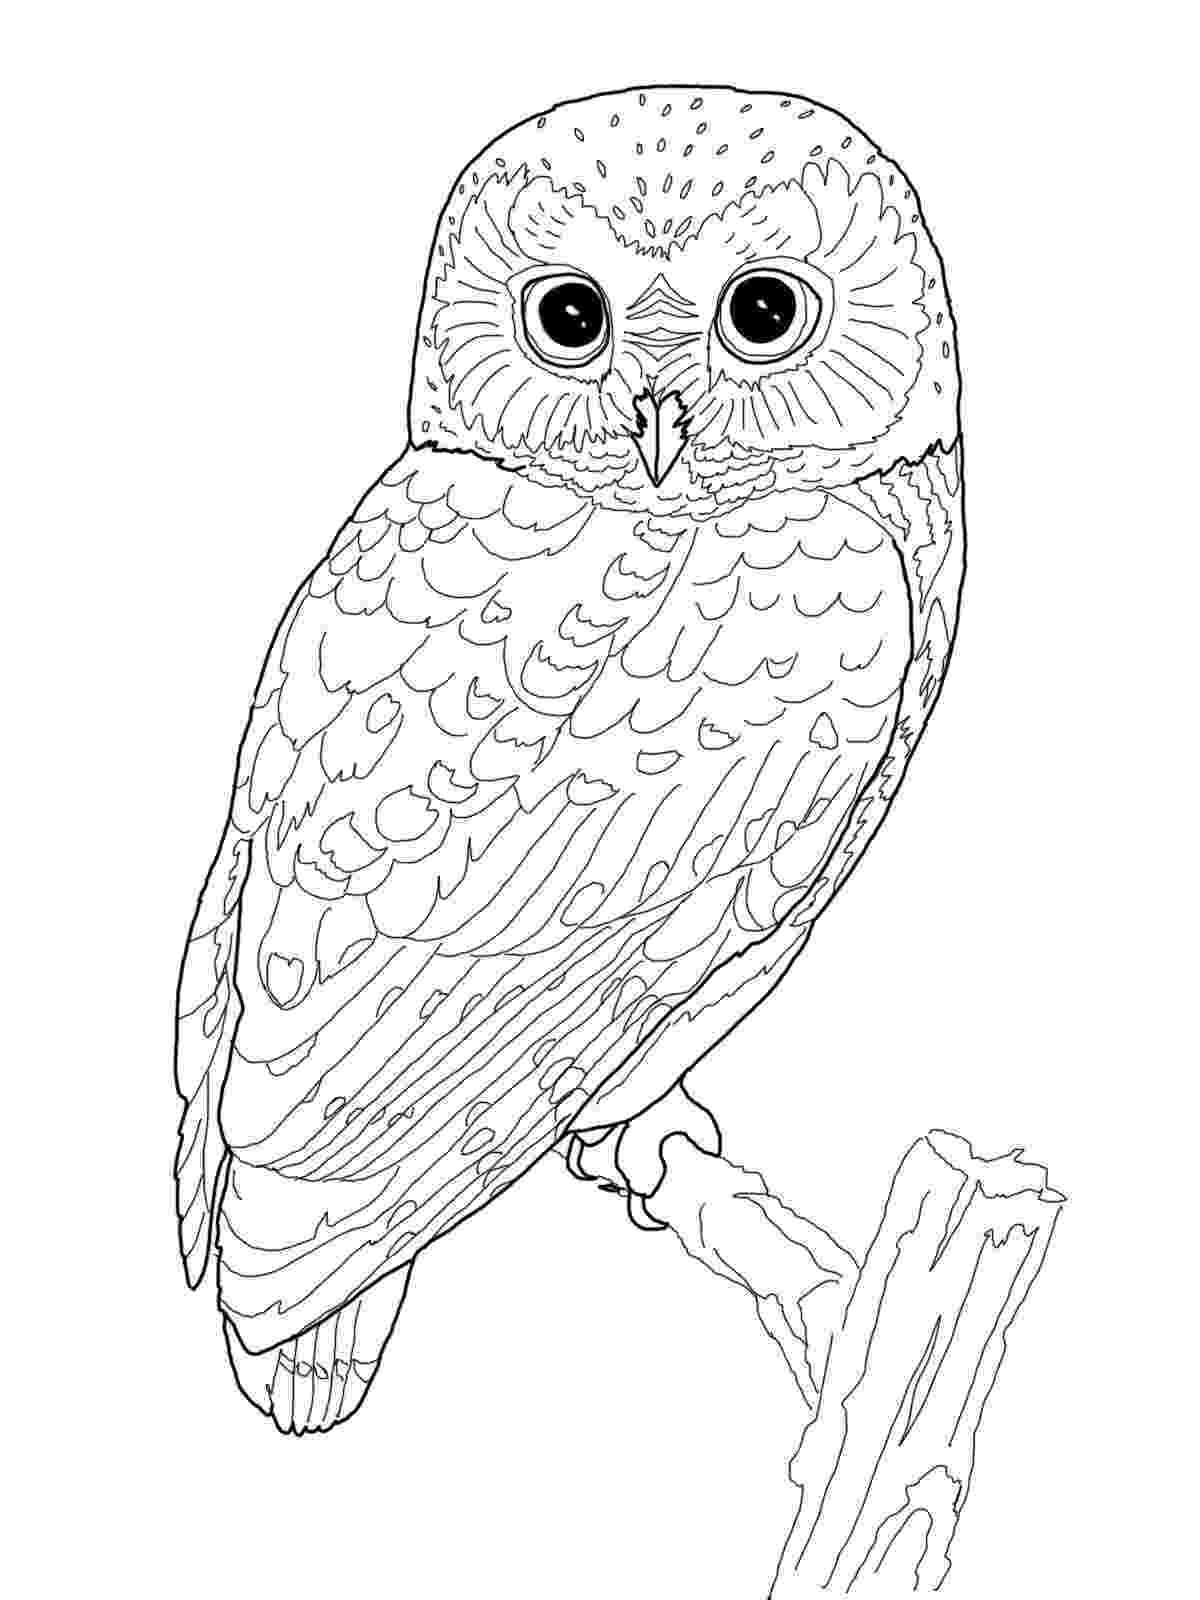 printable detailed coloring pages owl coloring pages for adults free detailed owl coloring printable pages detailed coloring